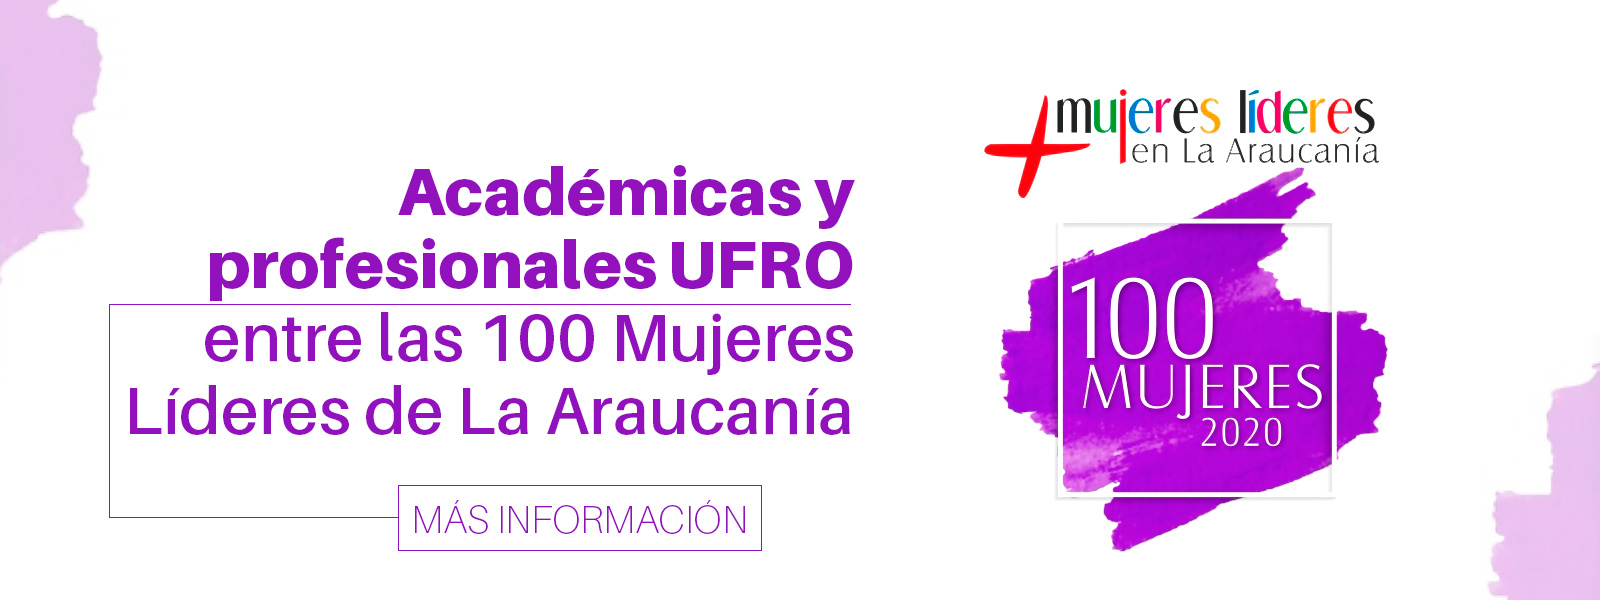 Mujeres lideres UFRO